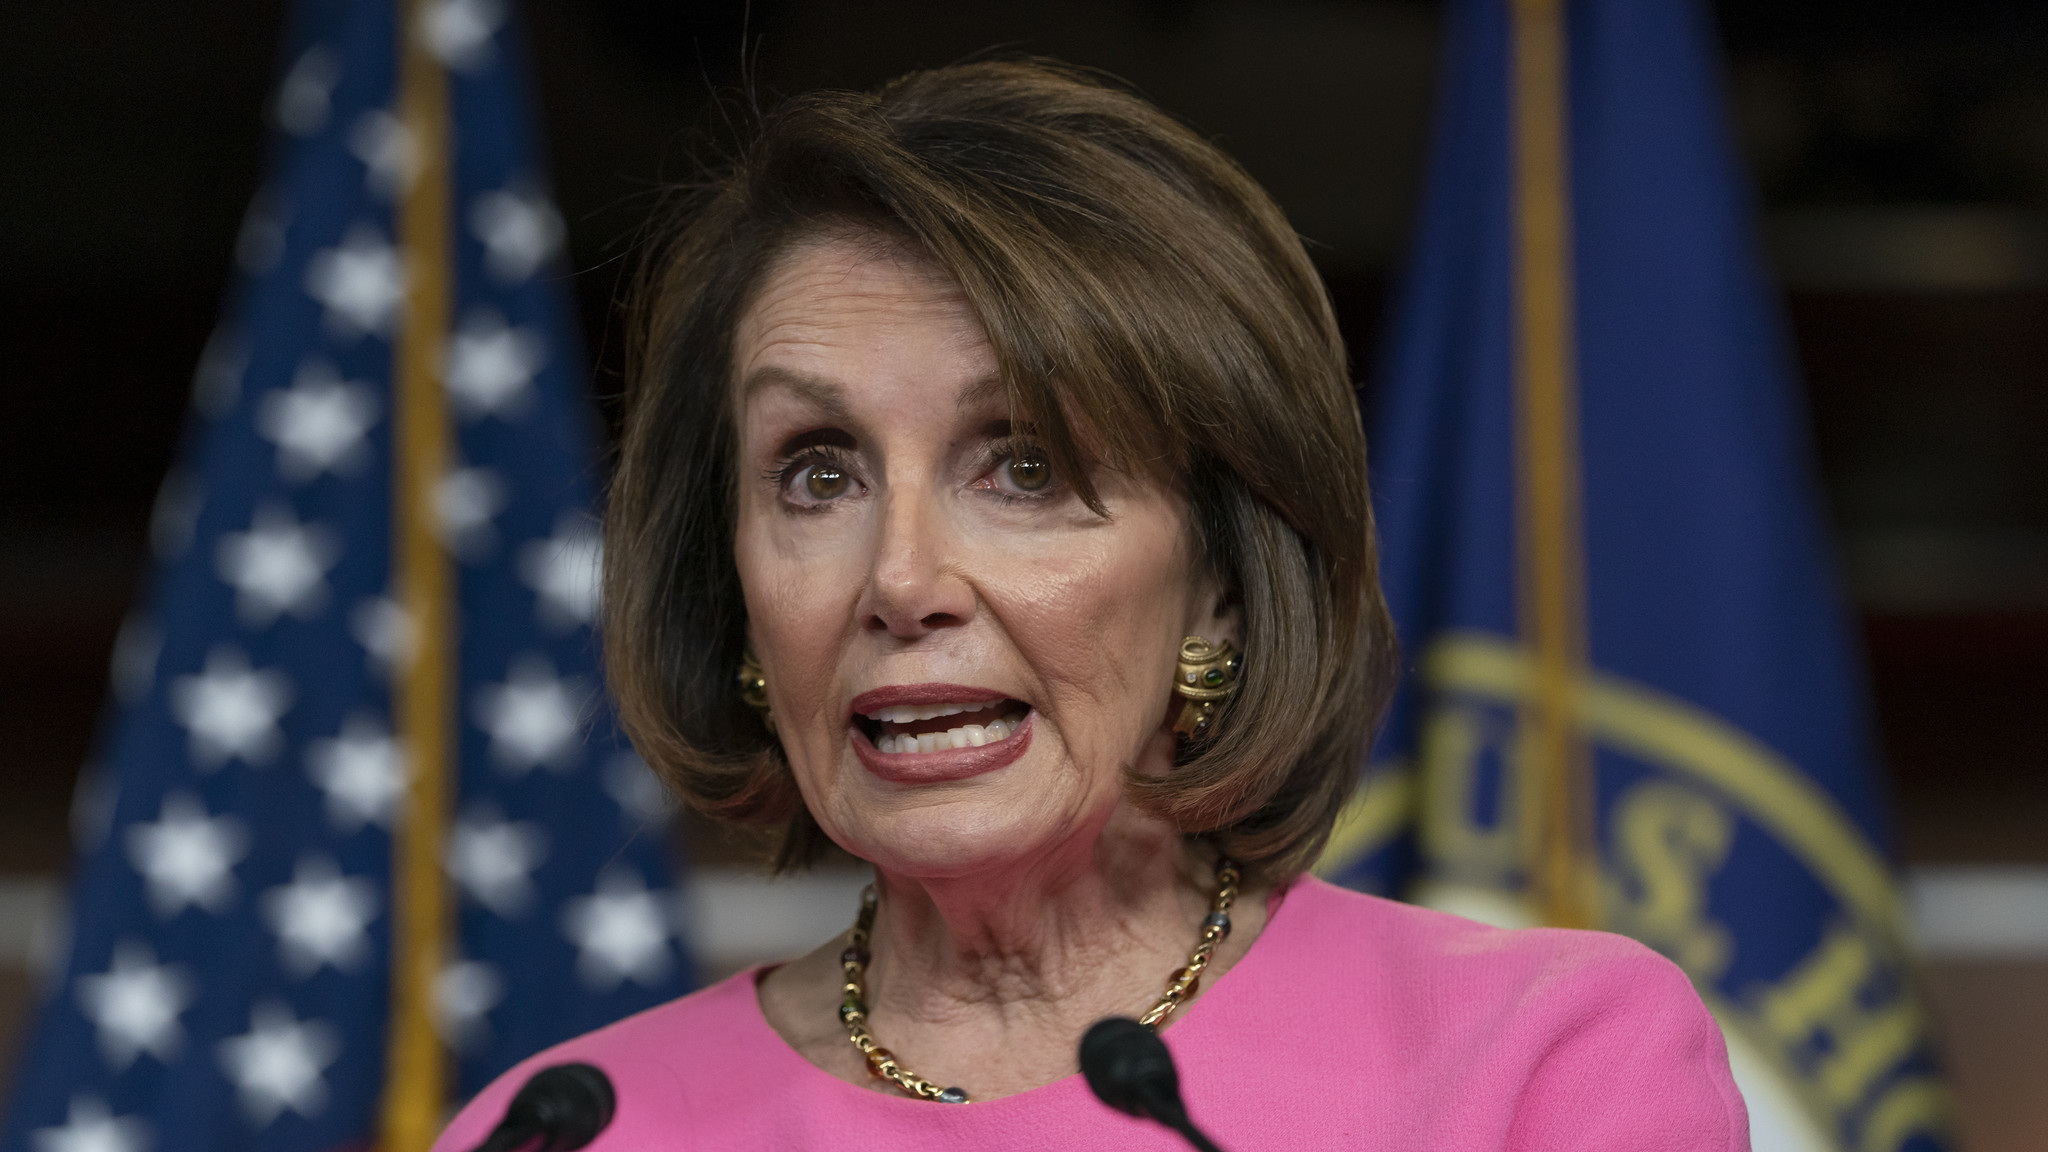 Nancy Pelosi questioned Donald Trump's fitness for office. He responded by calling her 'crazy' and himself a 'stable genius.'